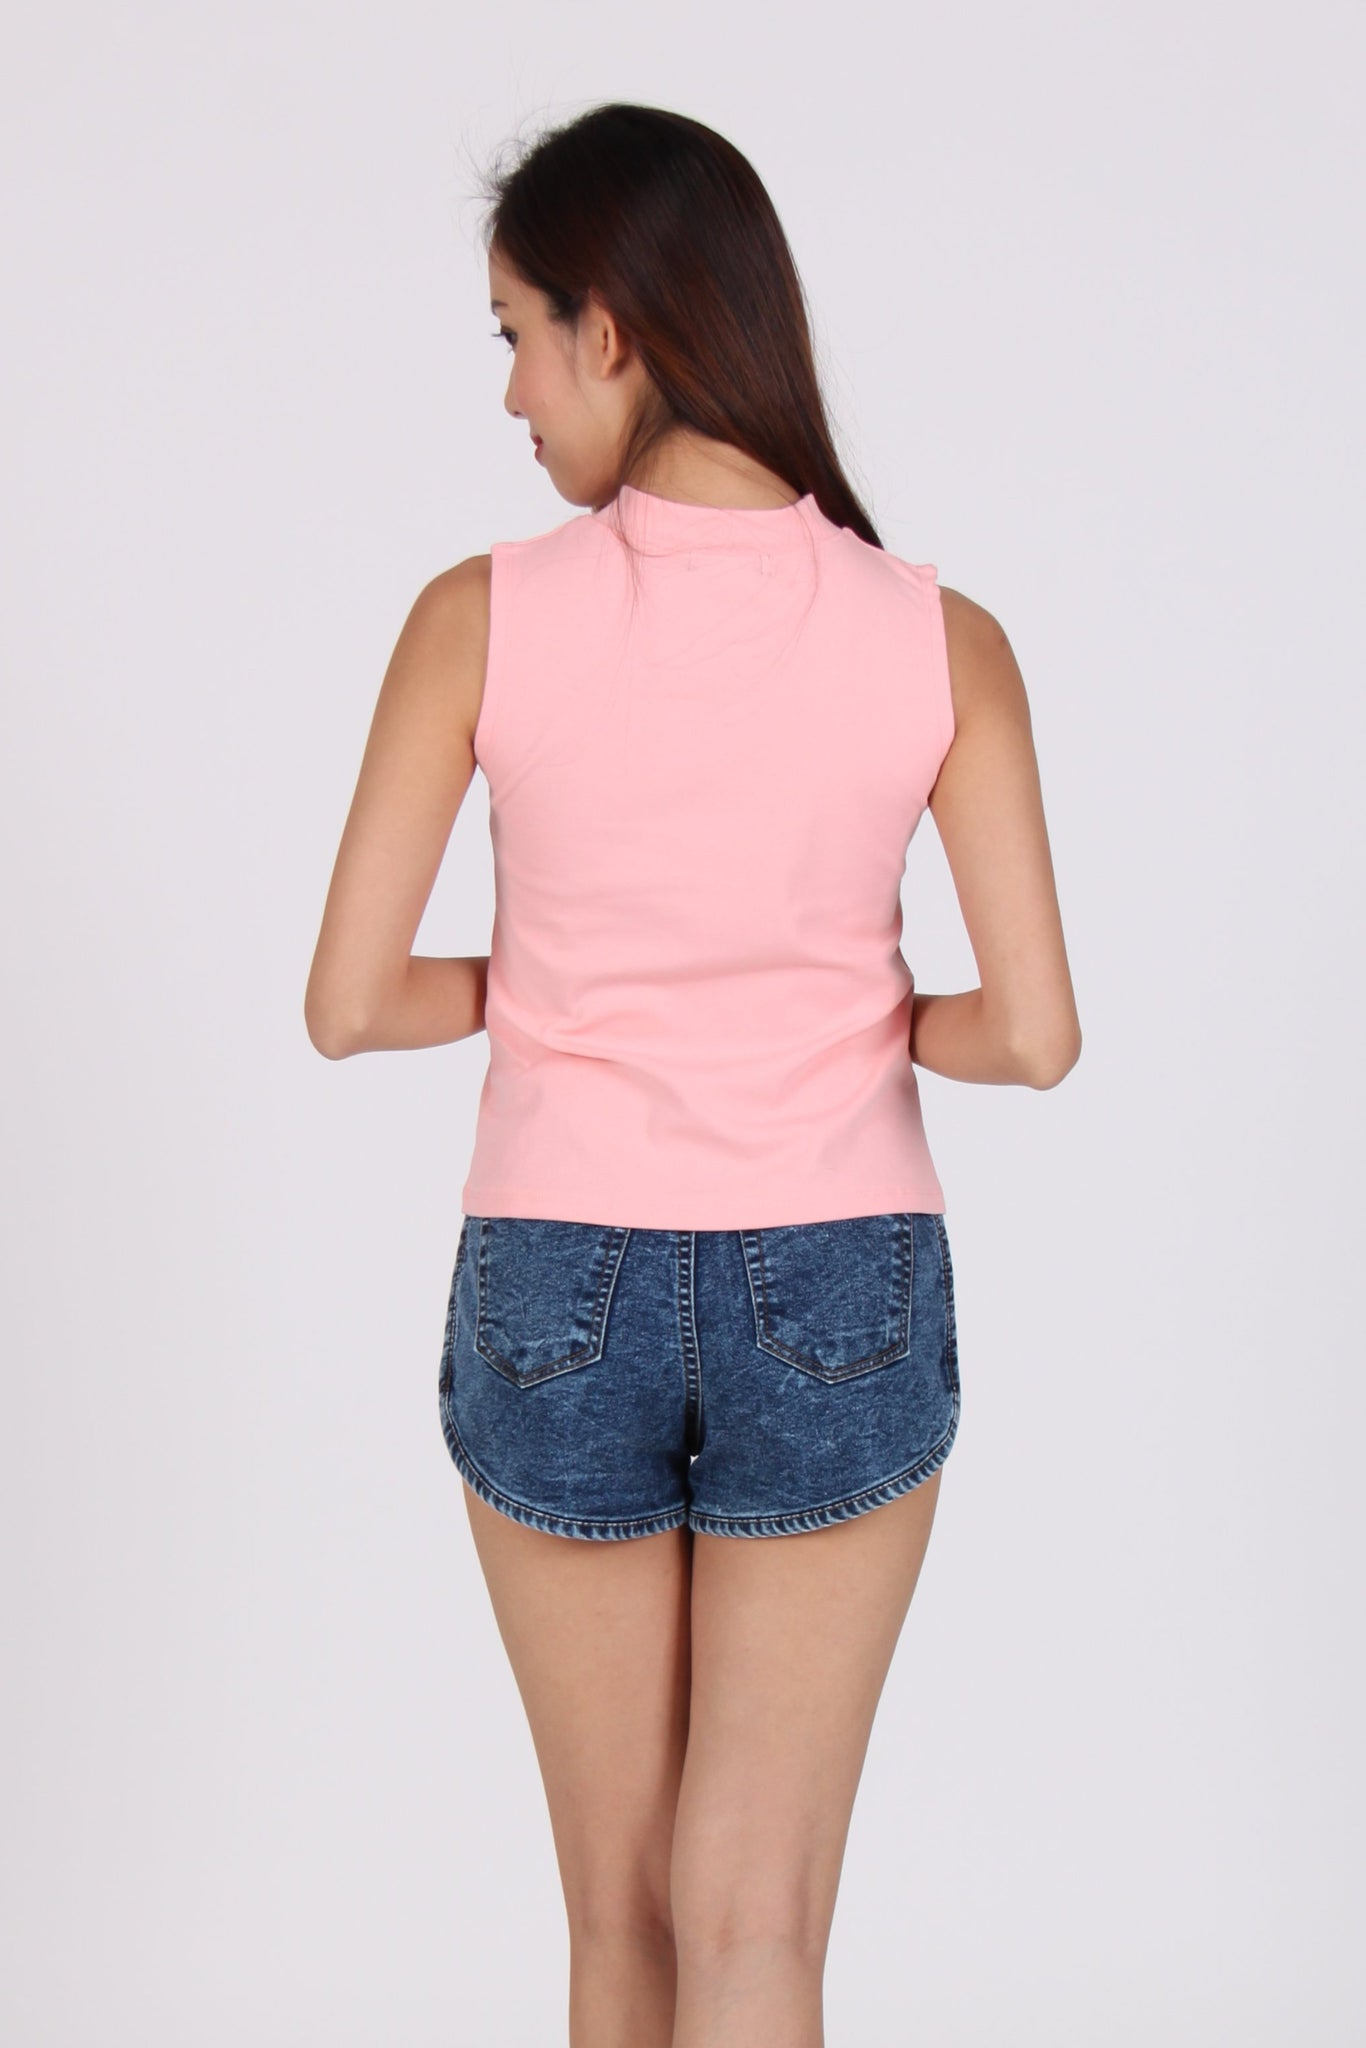 Basic Premium Cotton Top In Peach